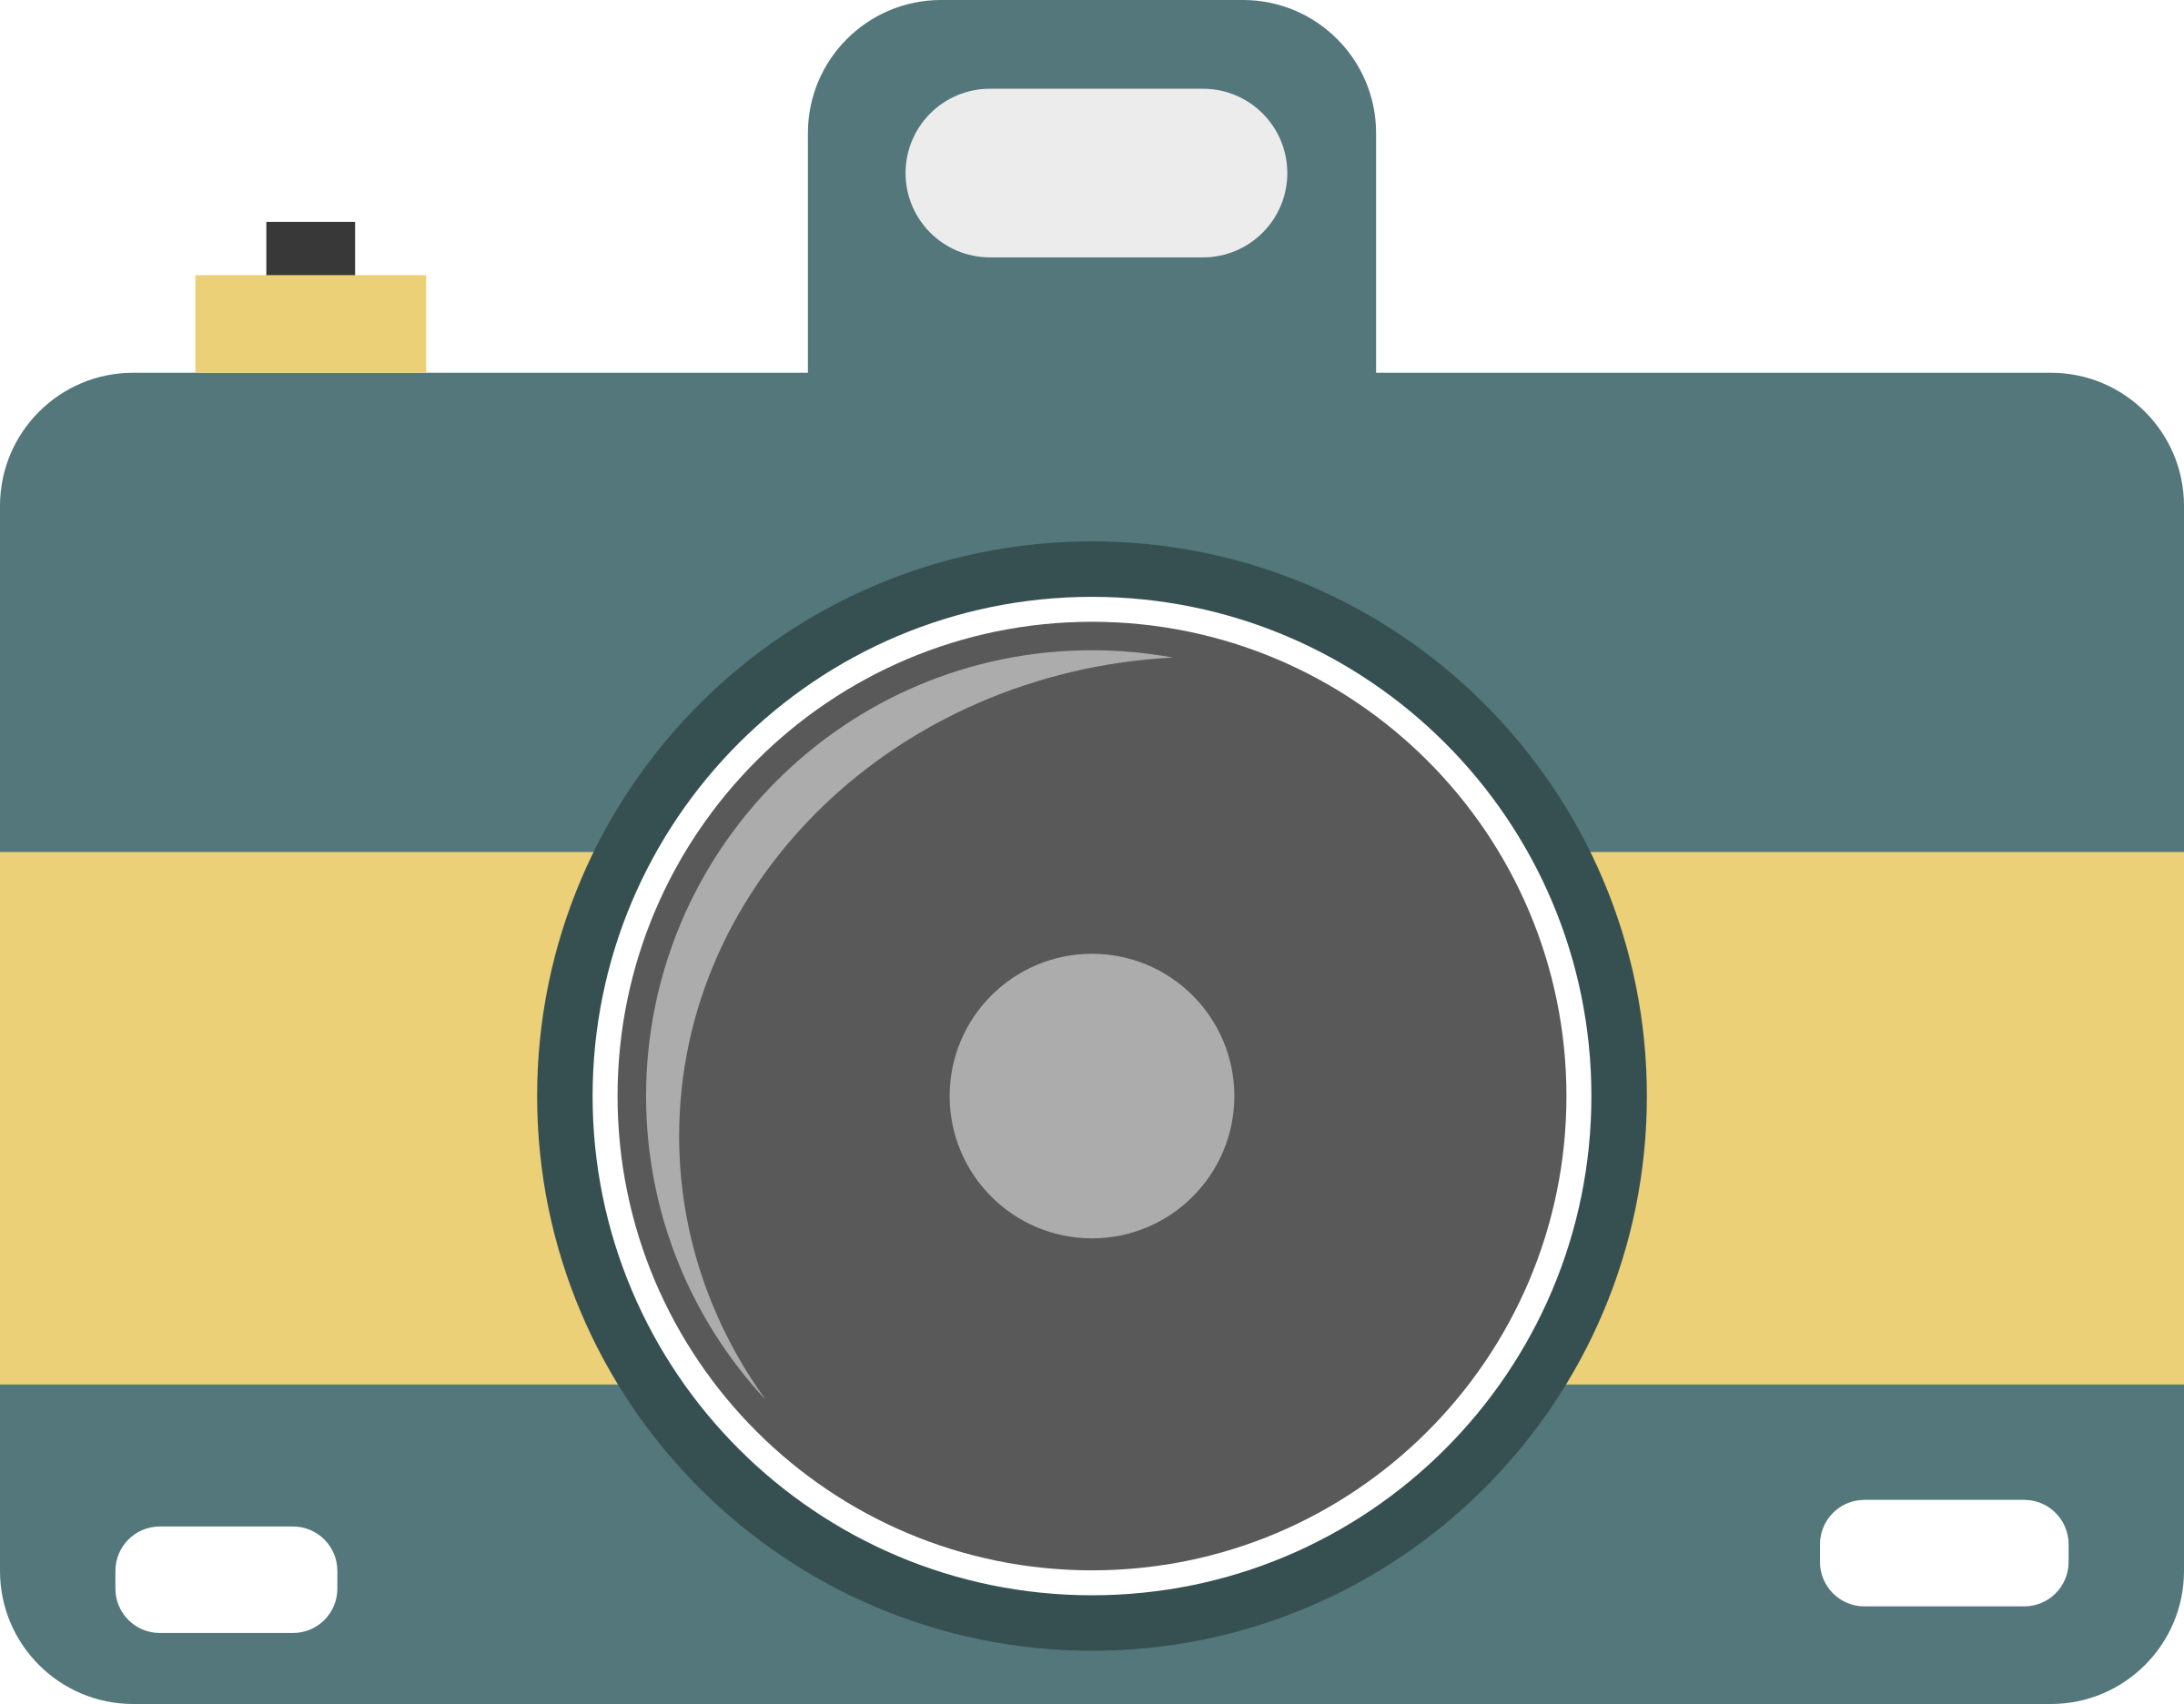 Photographer clipart green camera. Photography simple pencil and